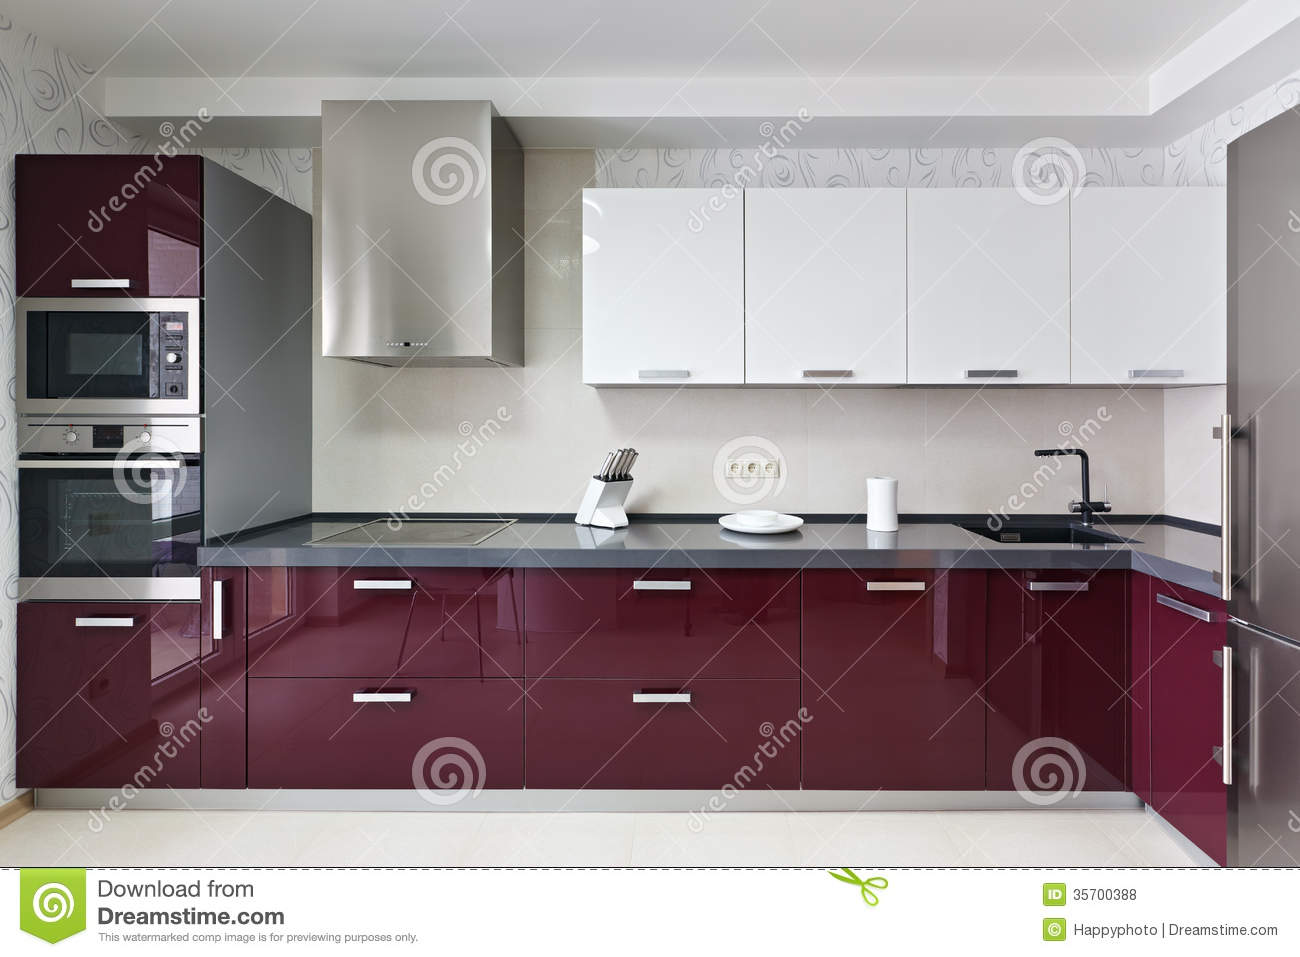 Modern Kitchen Interior modern kitchen interior royalty free stock photos - image: 35700388